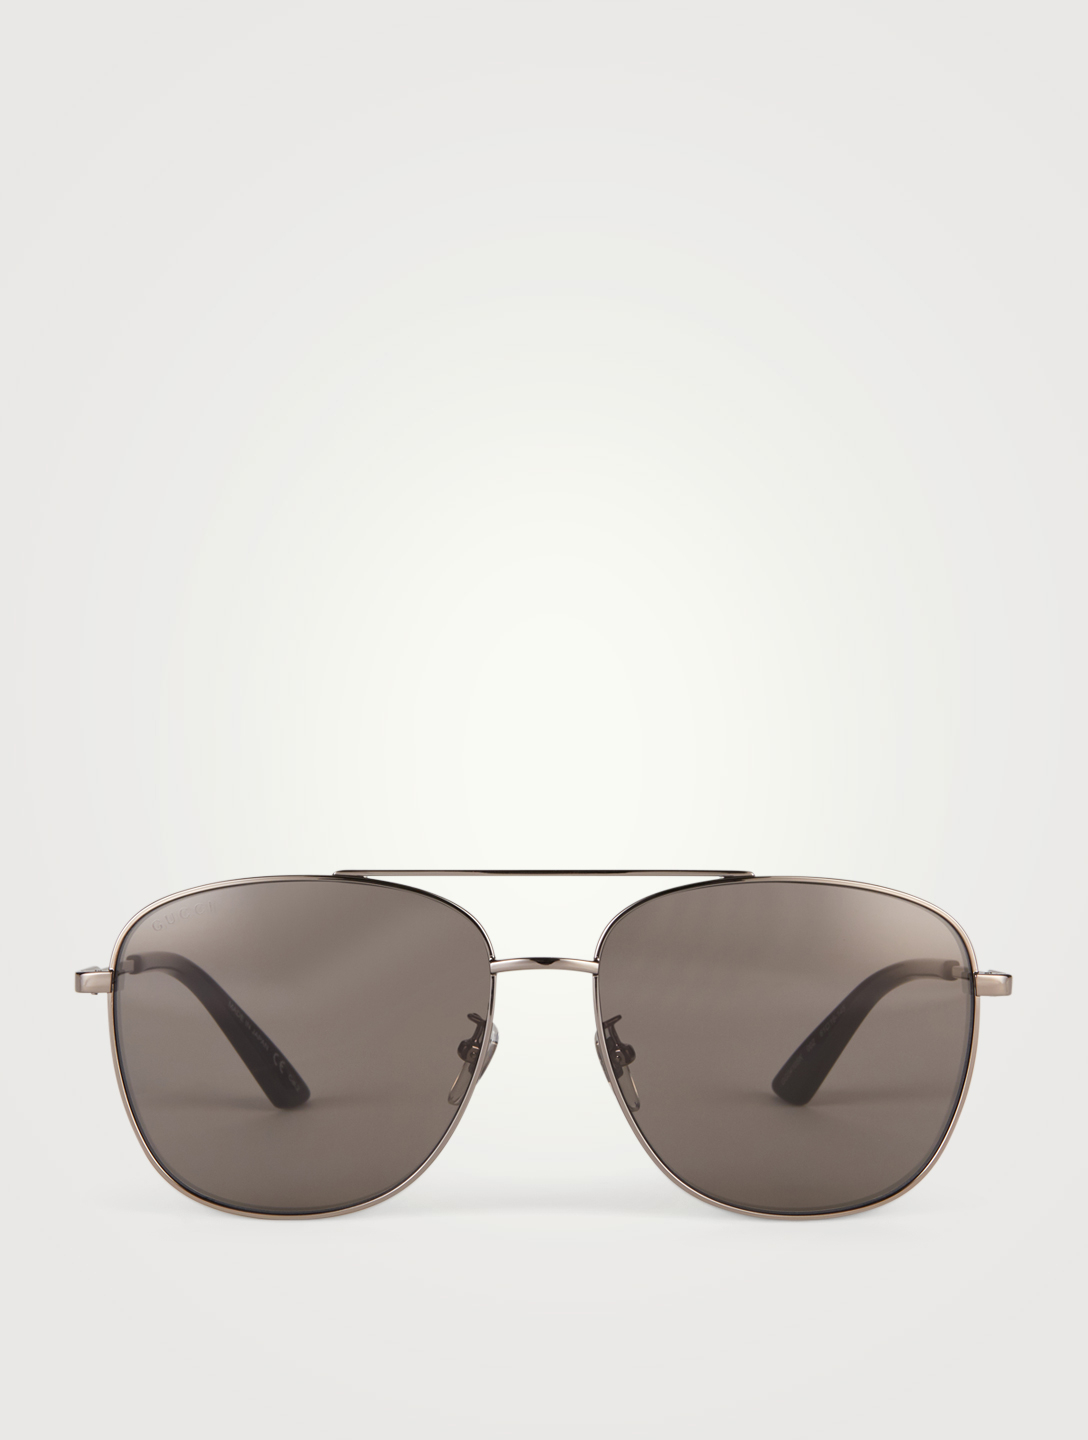 GUCCI Aviator Sunglasses Men's Grey